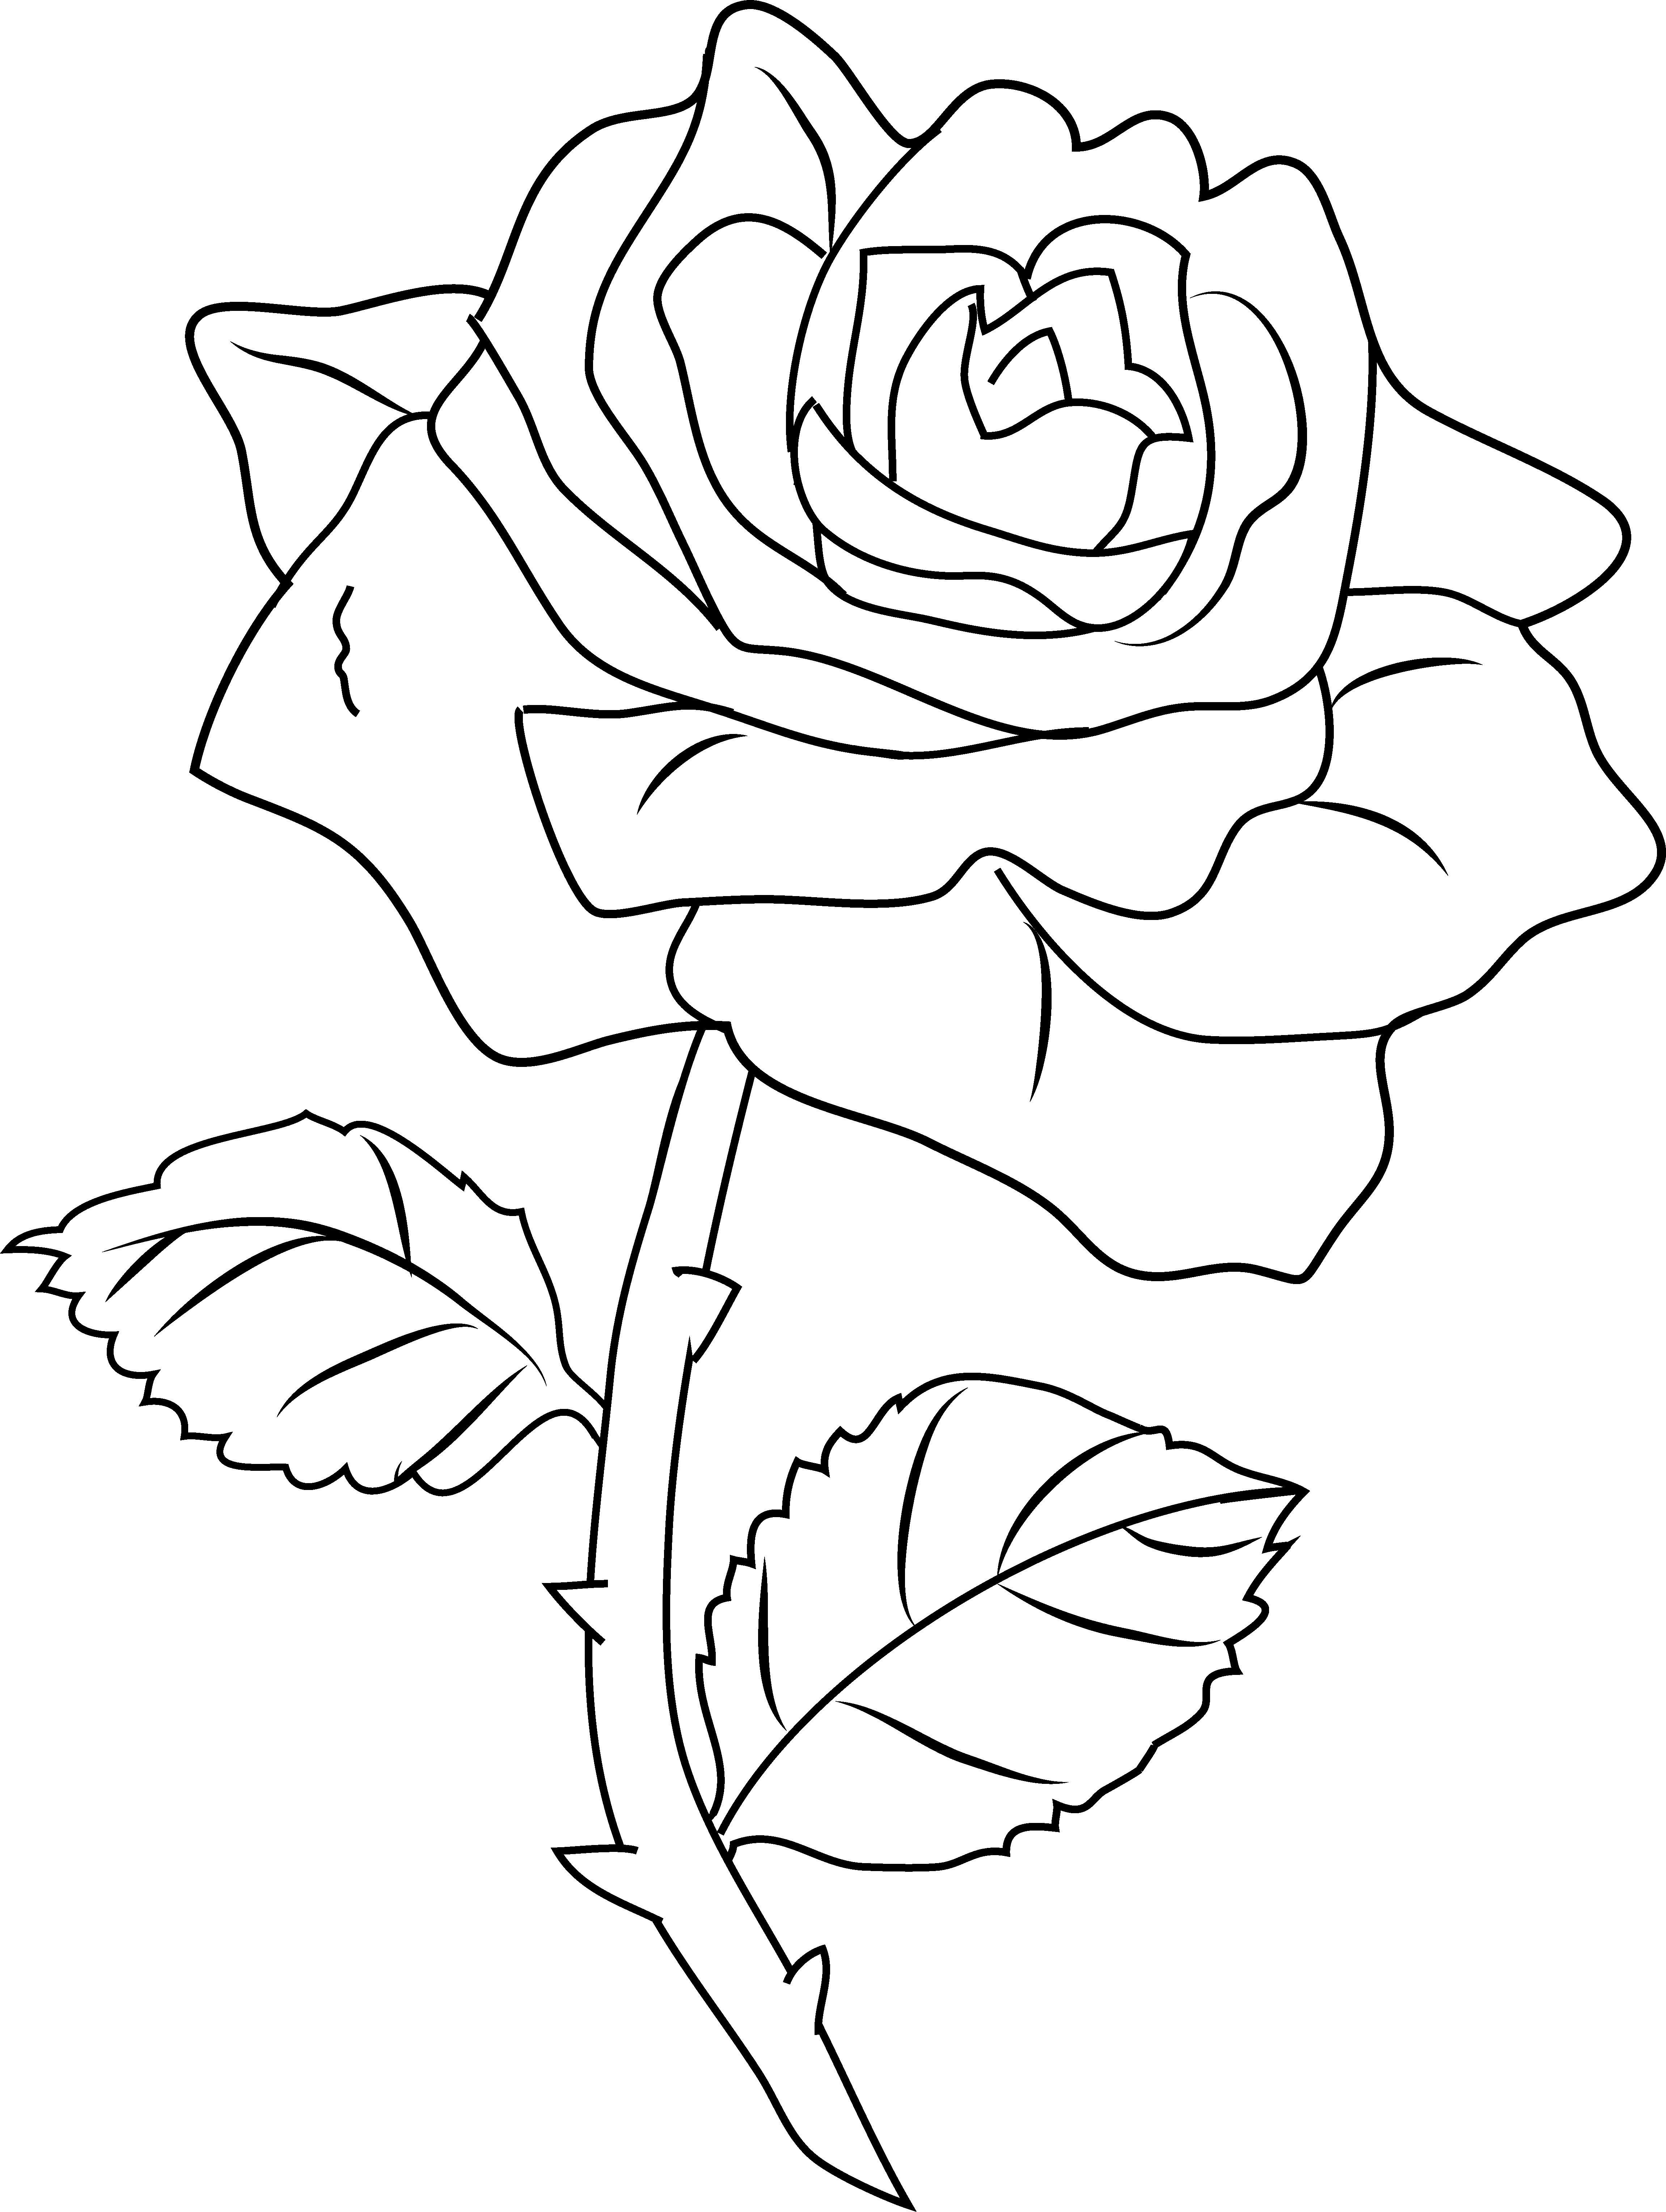 Flower Rose Coloring Pages